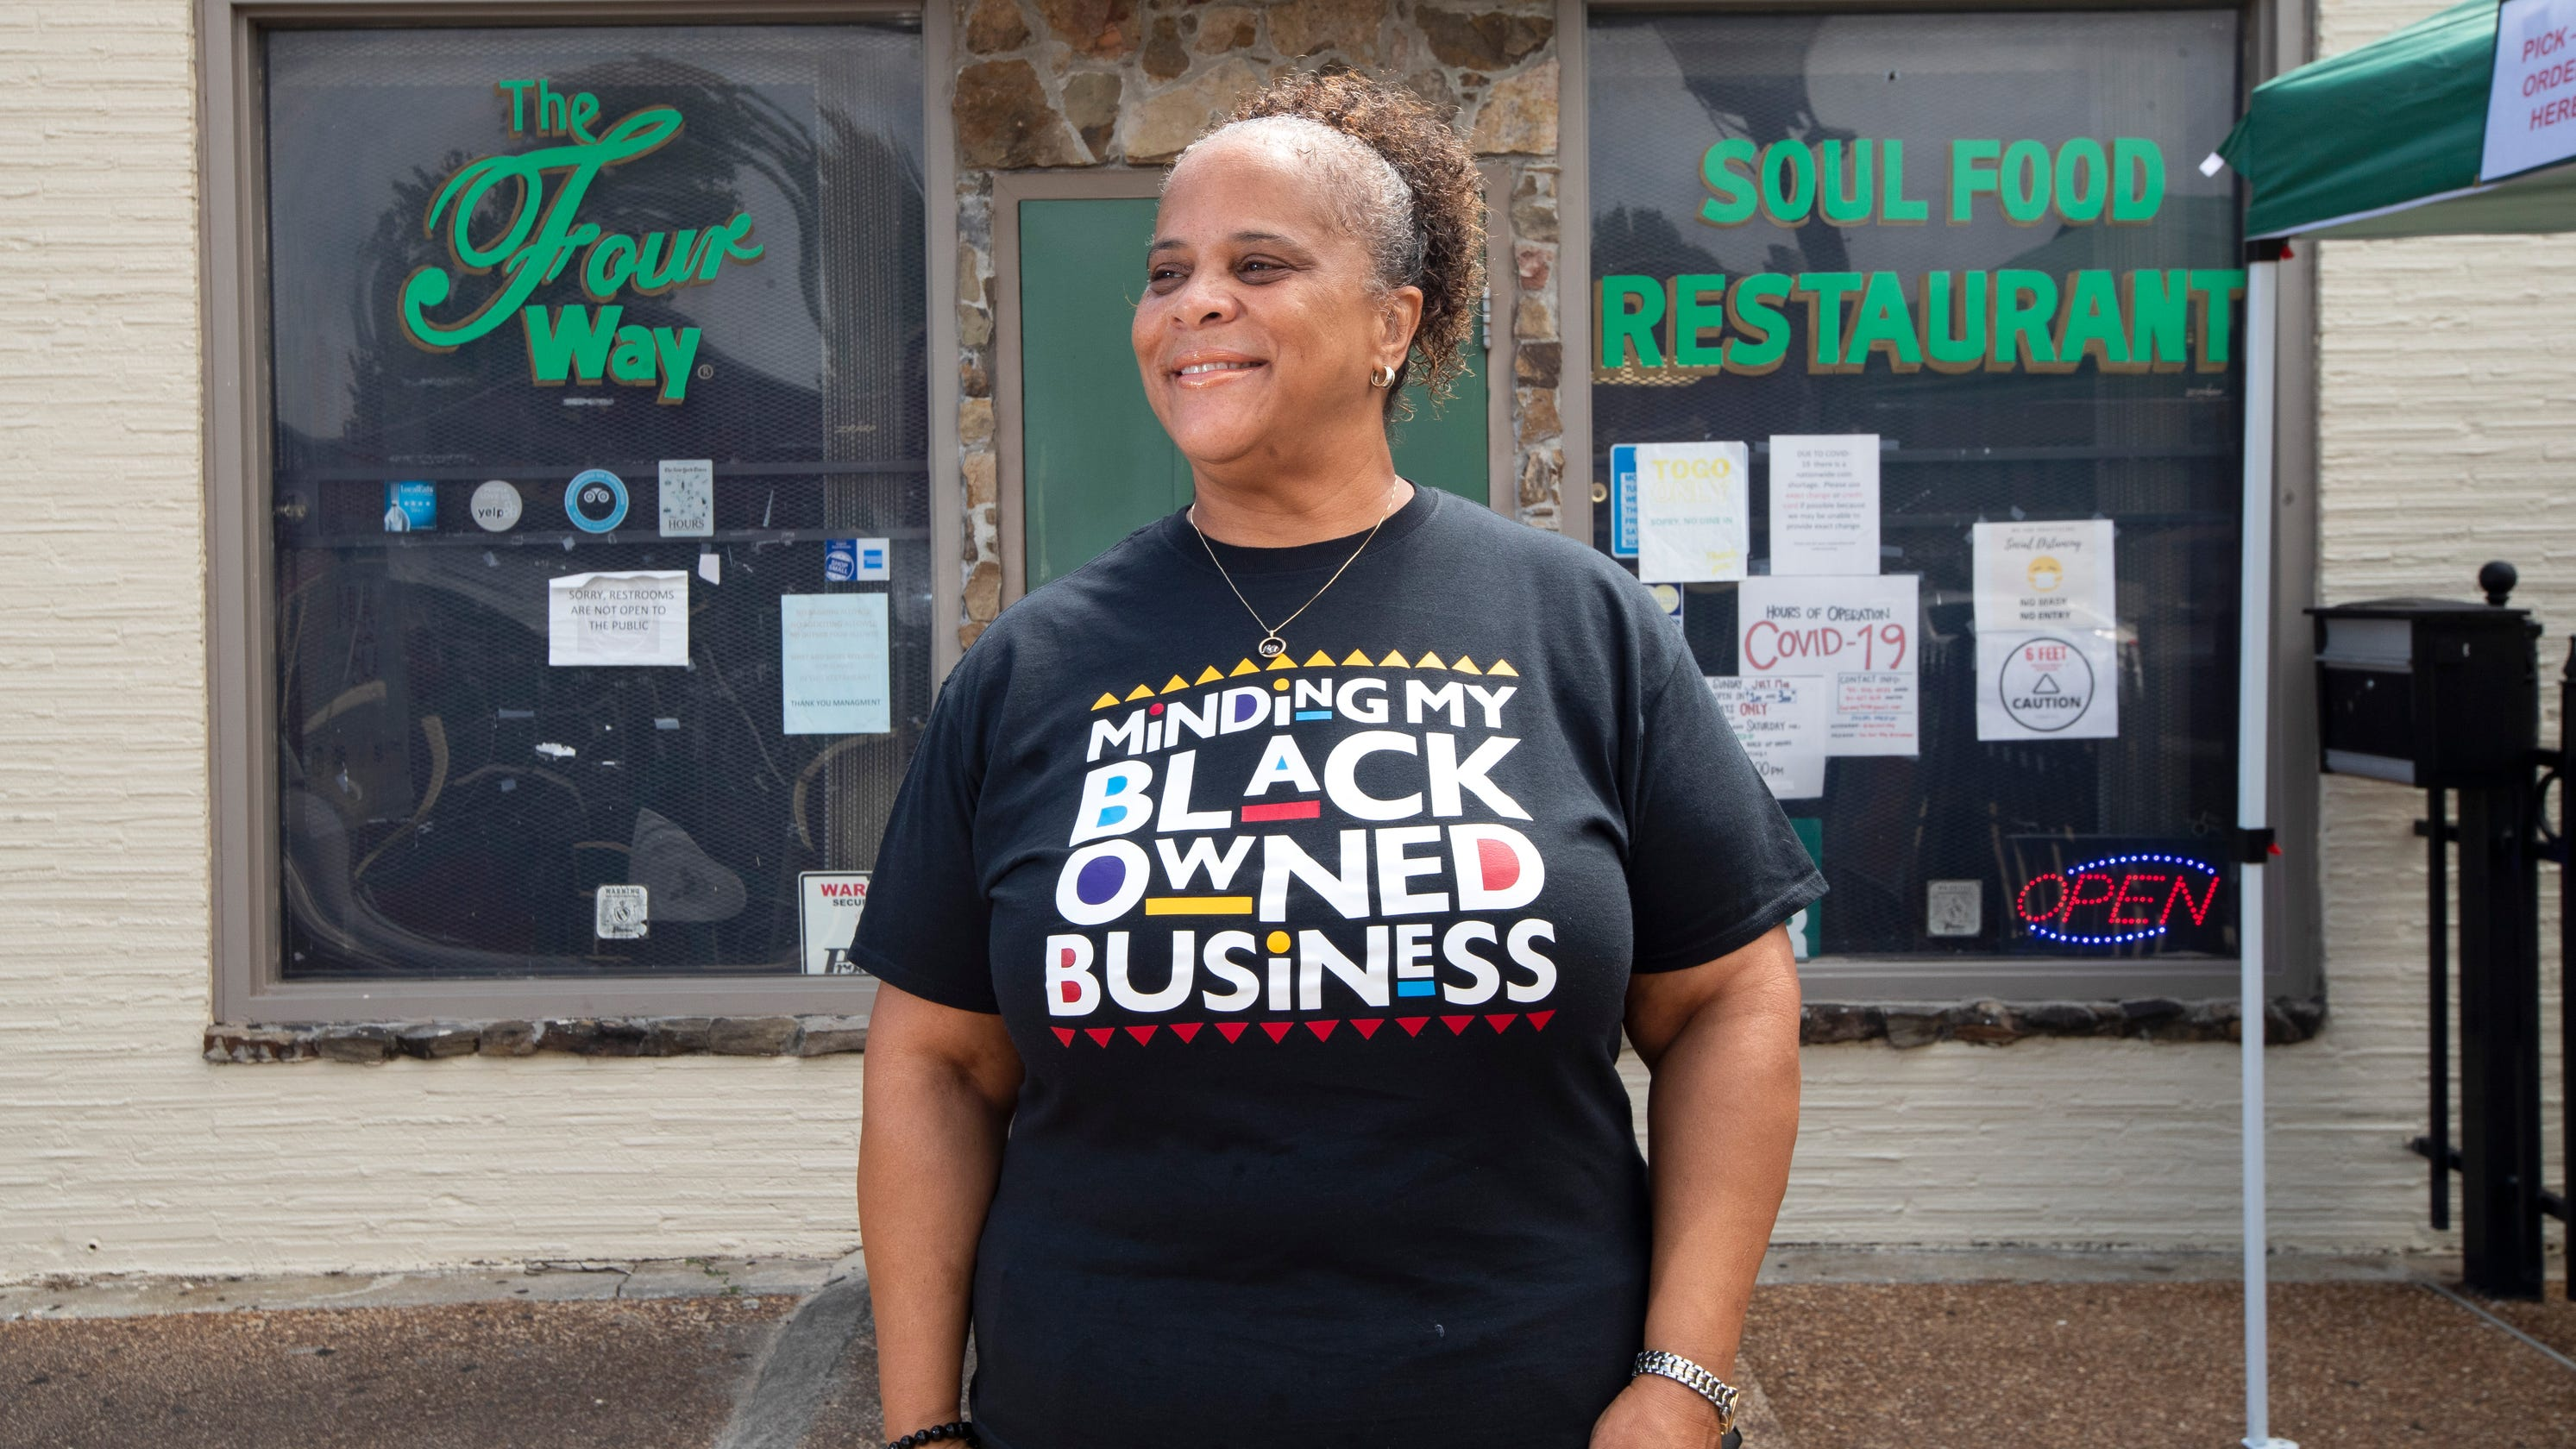 Memphis restaurant The Four Way receives $40,000 grant on 'TODAY' show